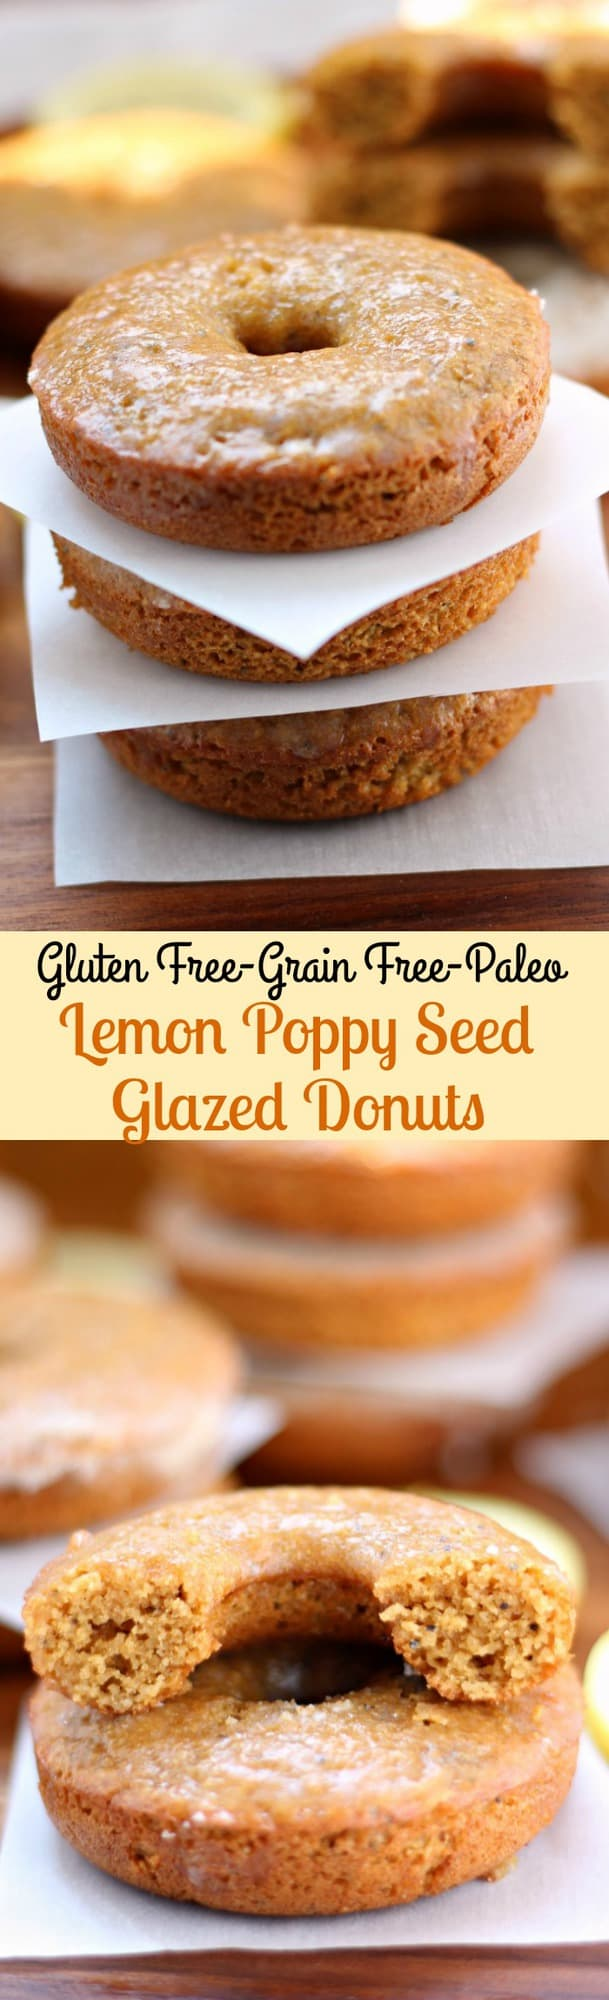 Healthy Paleo Lemon Poppy Seed Baked Glazed Donuts that are gluten free, grain free, and Paleo made with almond flour and a lemon maple glaze